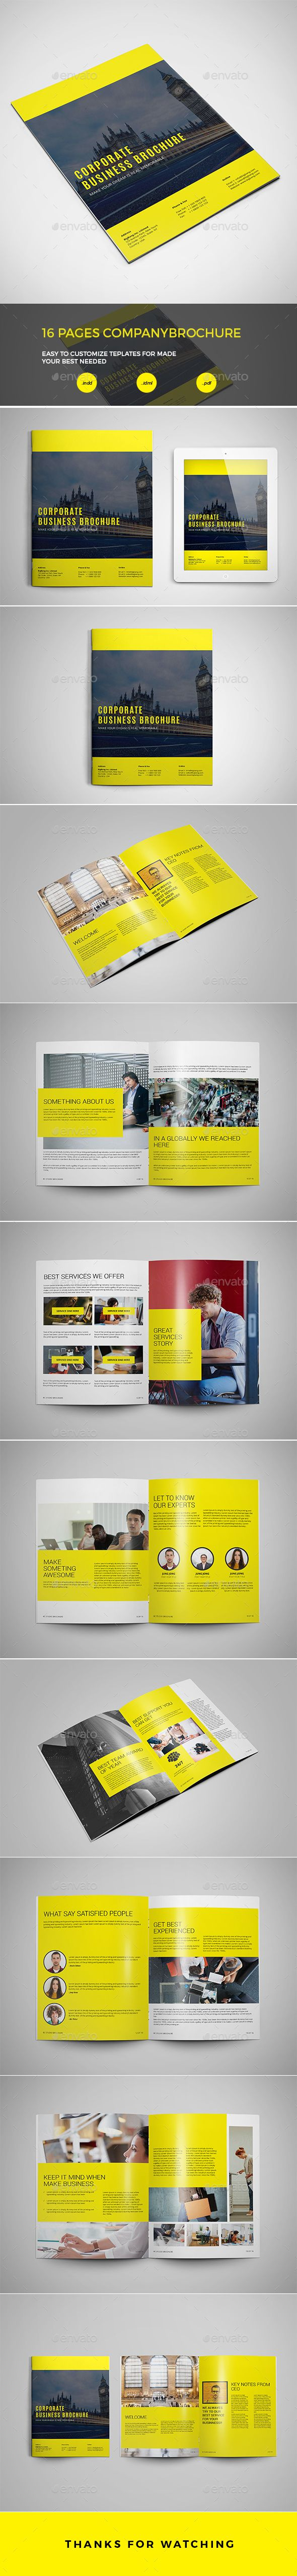 Brochure - Brochures Print Templates Clean & Creative Brochure is ideal for multipurpose corporate business, quality & clean design, professional and modern brochure presentation template. Just drop in your own images and texts, and it's ready to Print. this Brochure is loaded with paragraph/character styles for easy customization. Easy to add more pages Easy to Customize Stylish Layout Paragraph Styles Character Styles Print-ready with bleed Auto page number Free fonts link Included PDF Preview